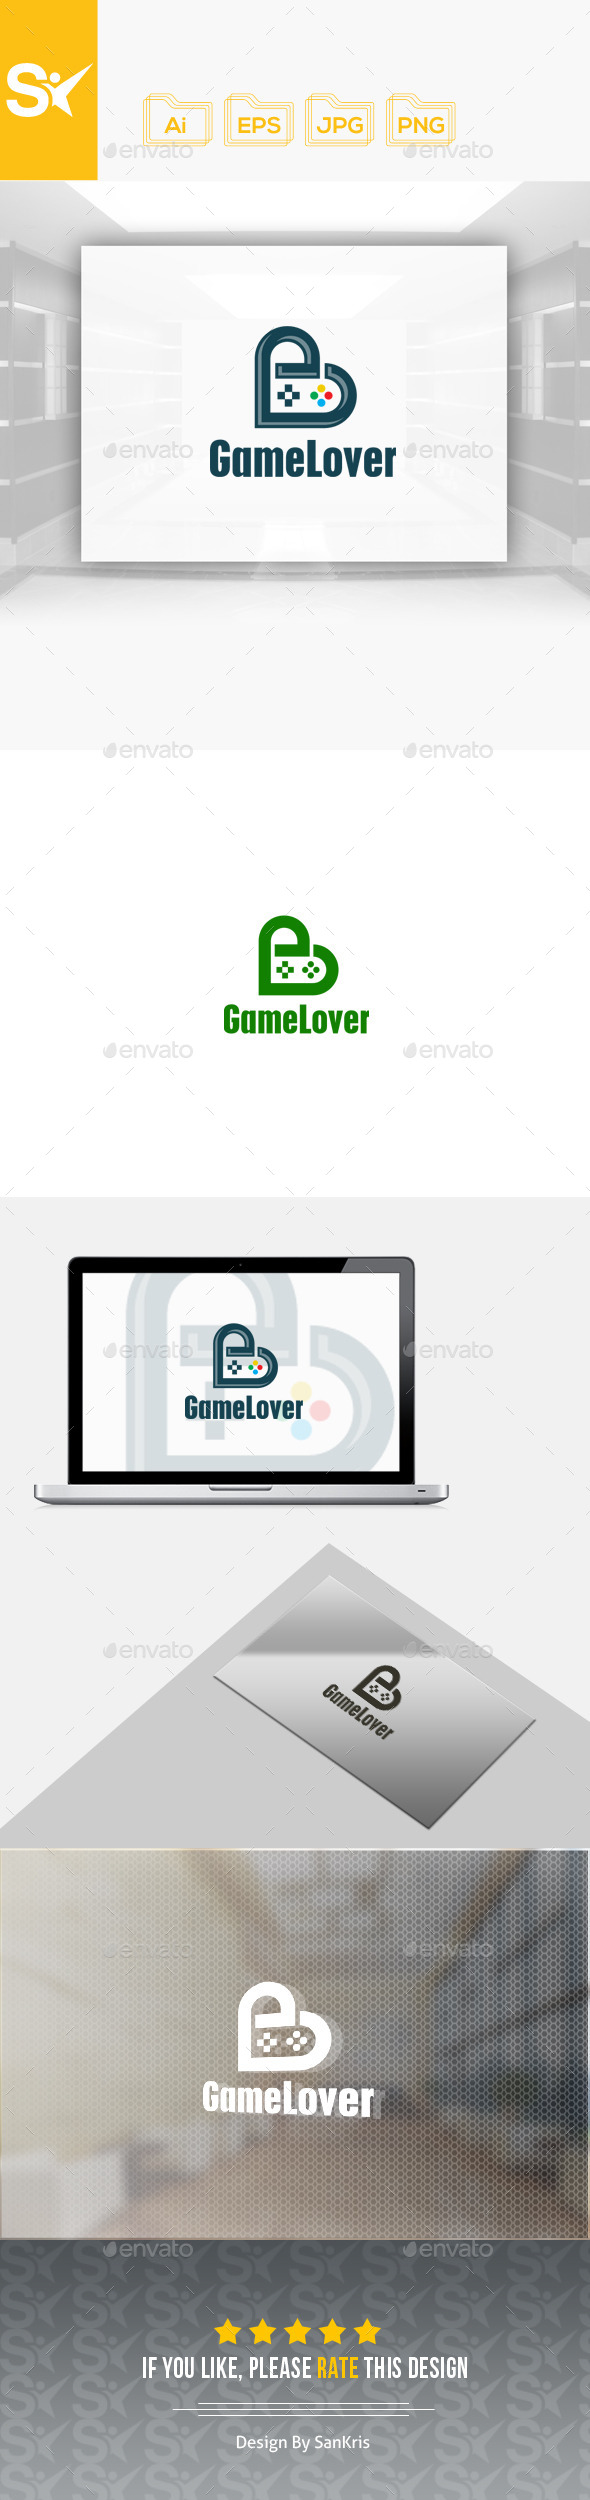 Game Lover Logo - Symbols Logo Templates